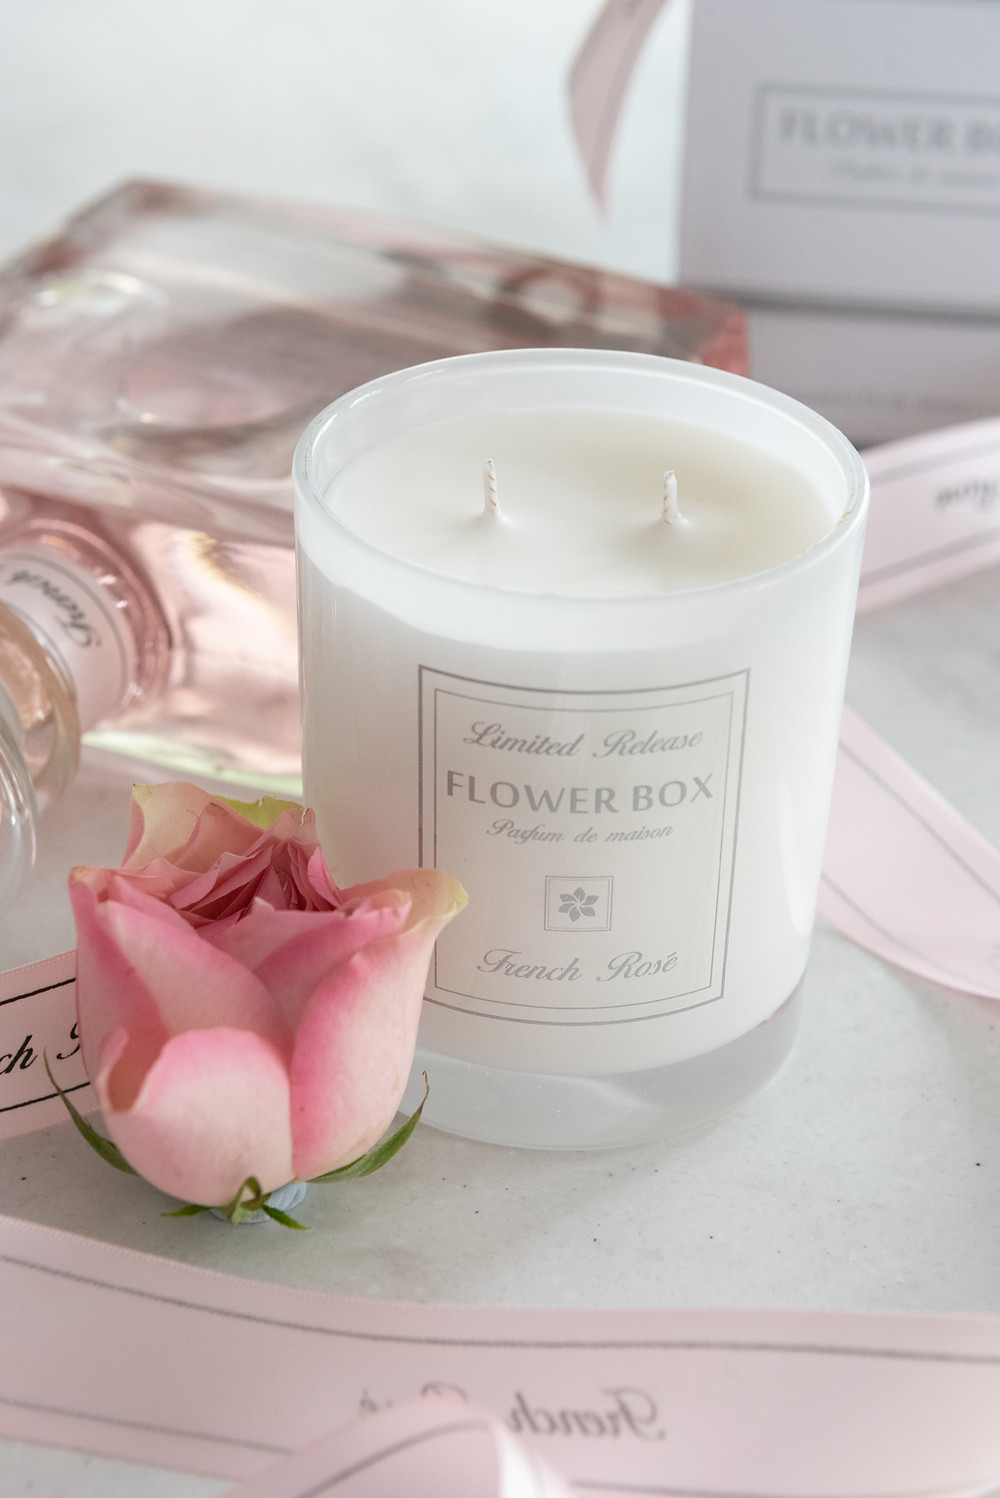 Flower Box Home Fragrance Scented Candle